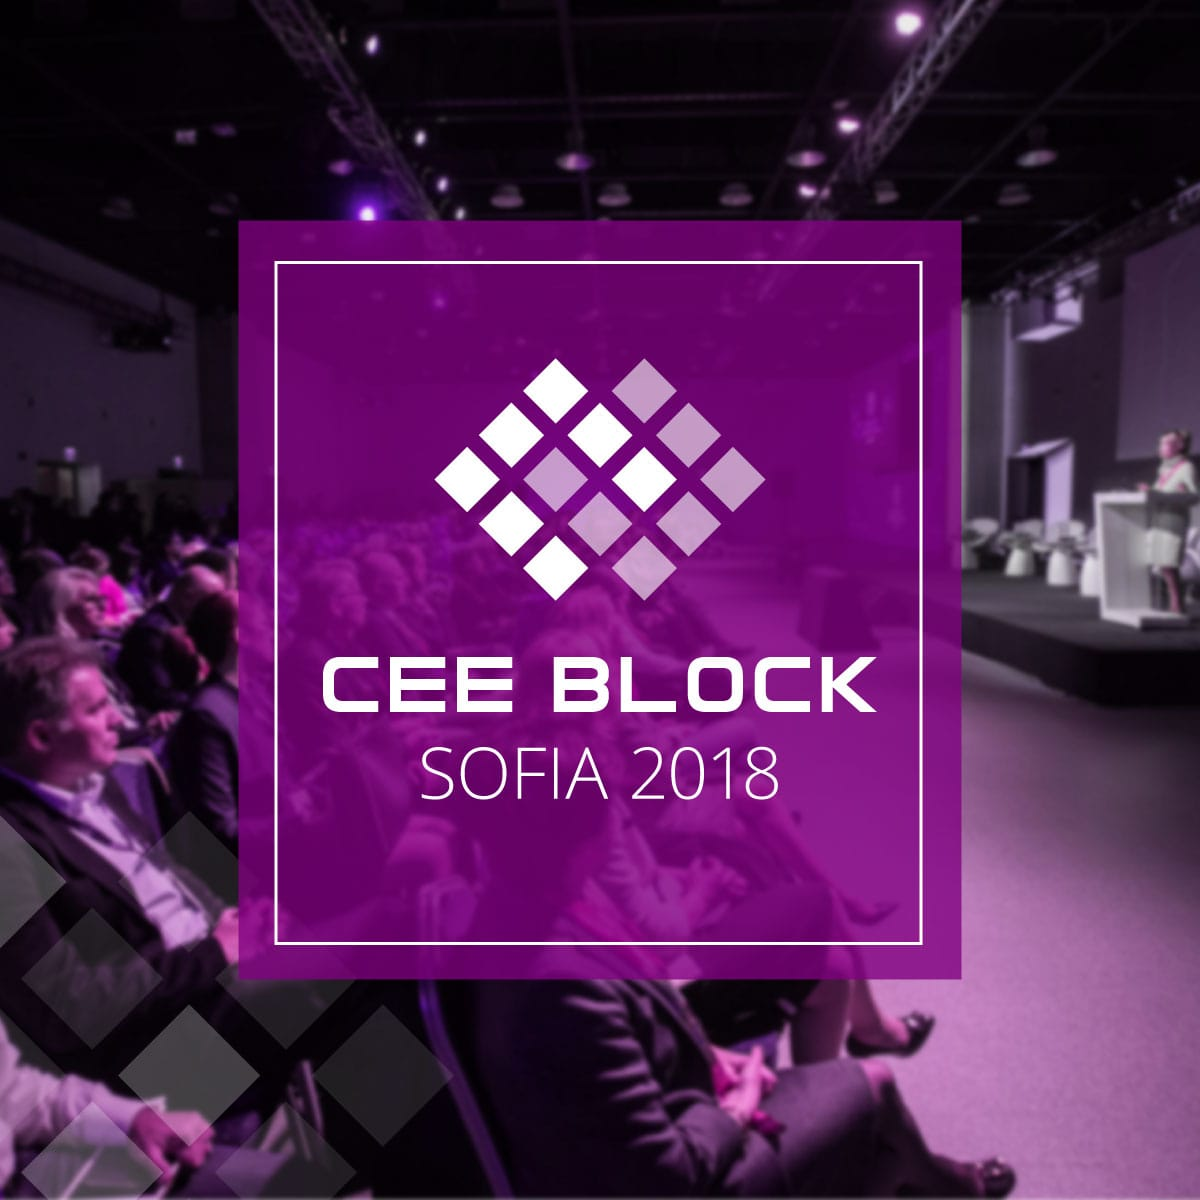 The biggest Blockchain Forum in Europe brings together high-level policy makers in Sofia